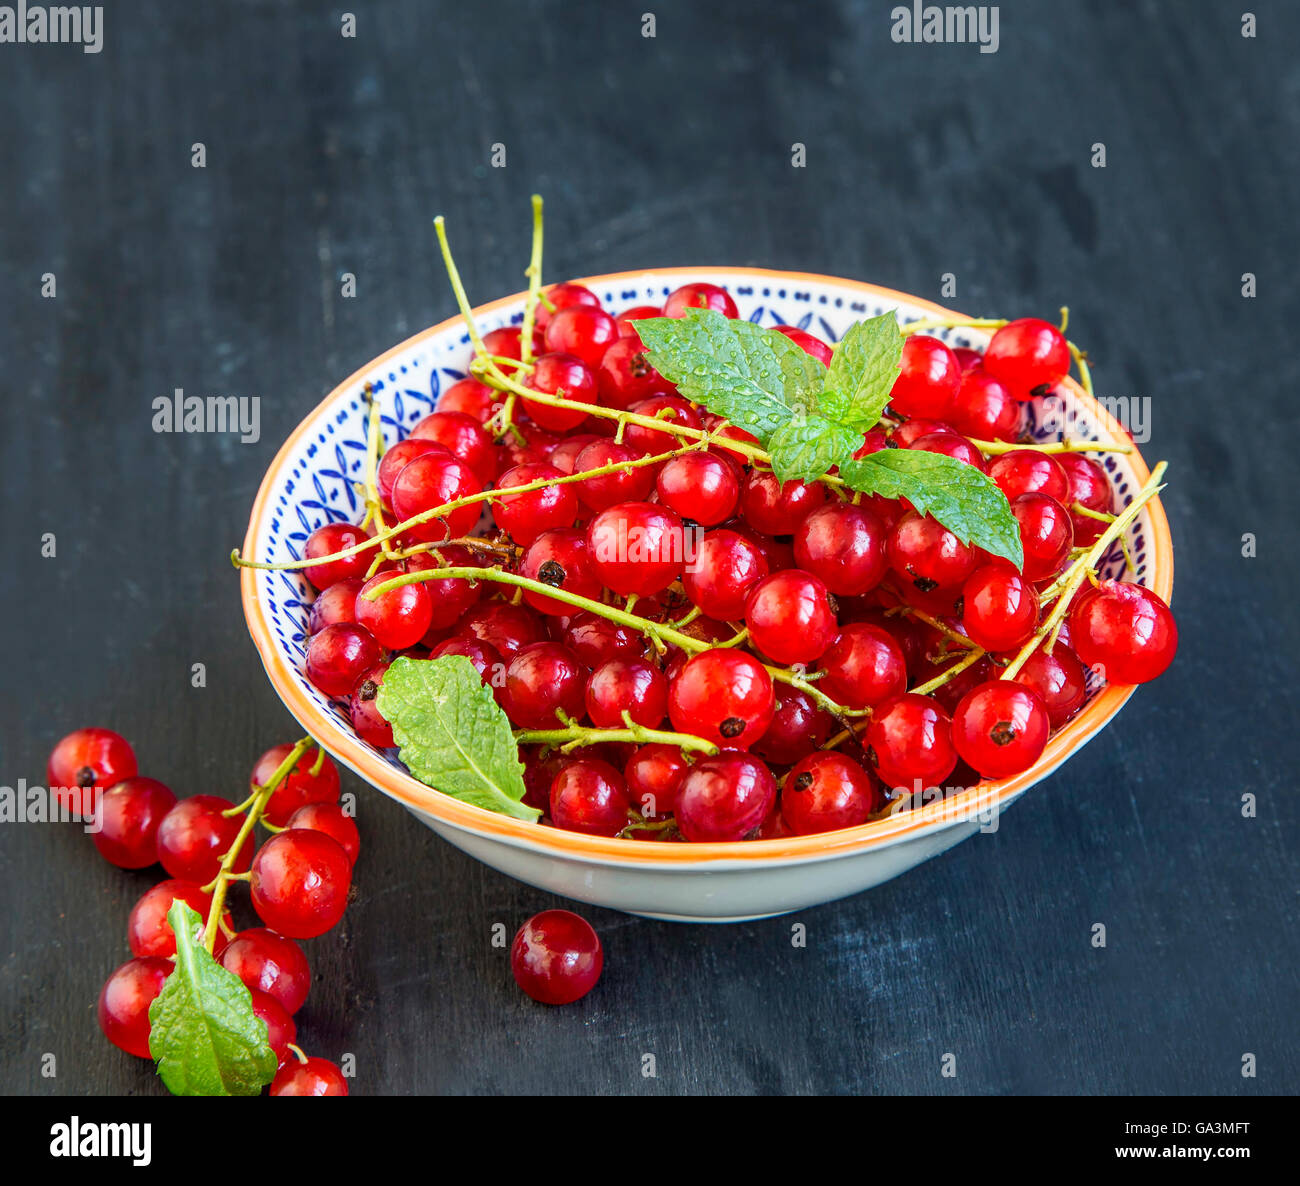 Red fresh currants in a rustic bowl with mint leaves - Stock Image